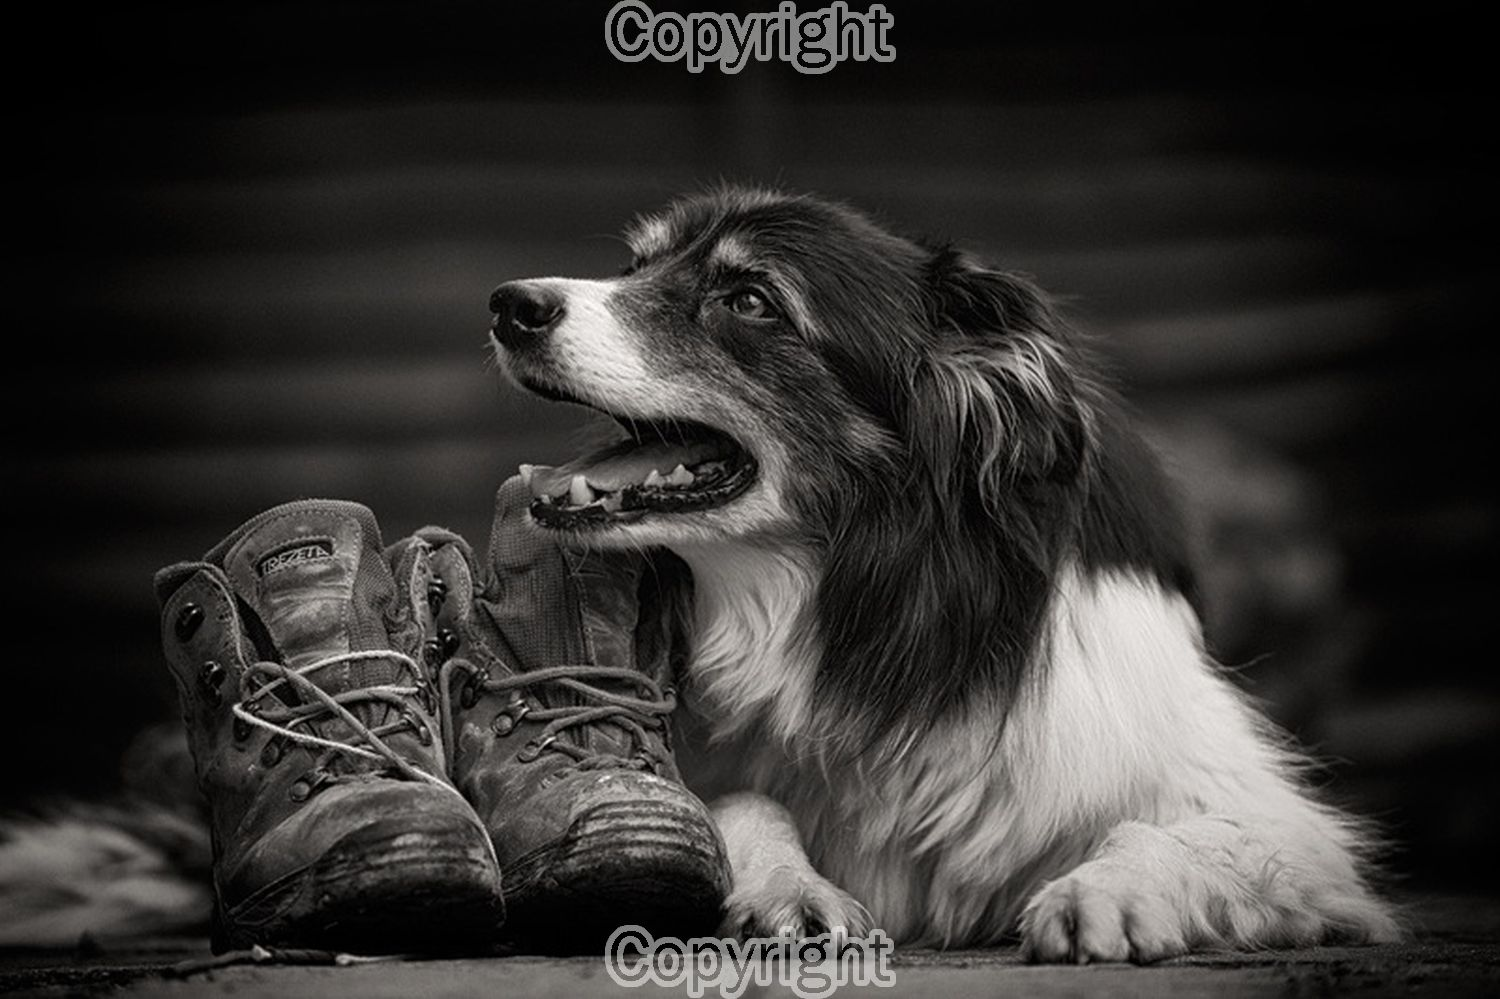 Brian Wigglesworth: Hurry up  Equipment: Canon 5D III & 70-200 f2.8L